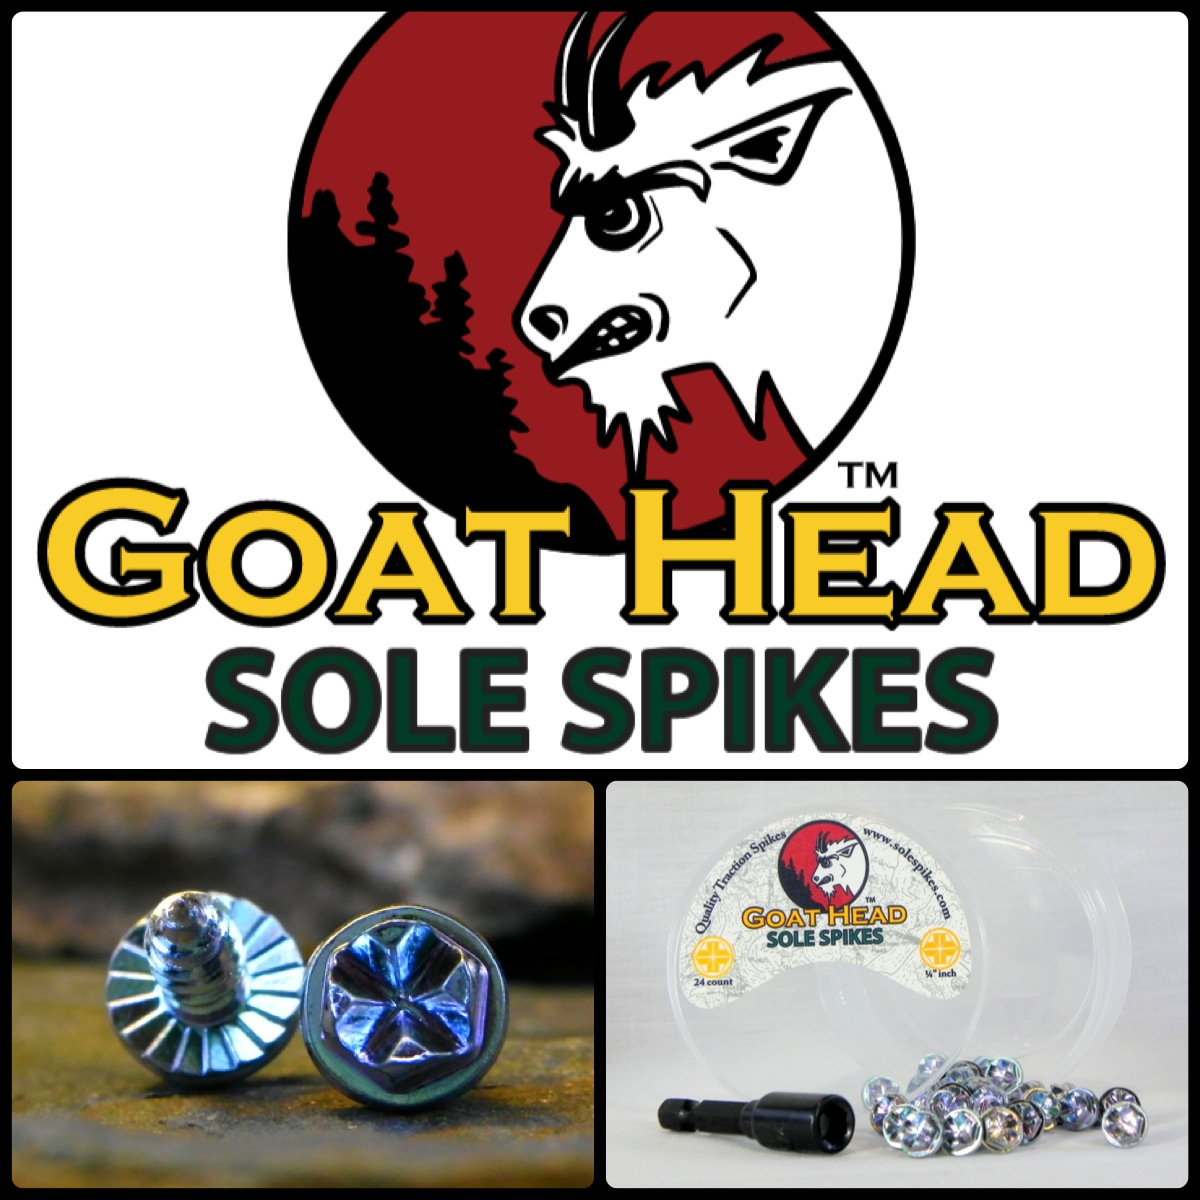 Goat Head Sole Spikes